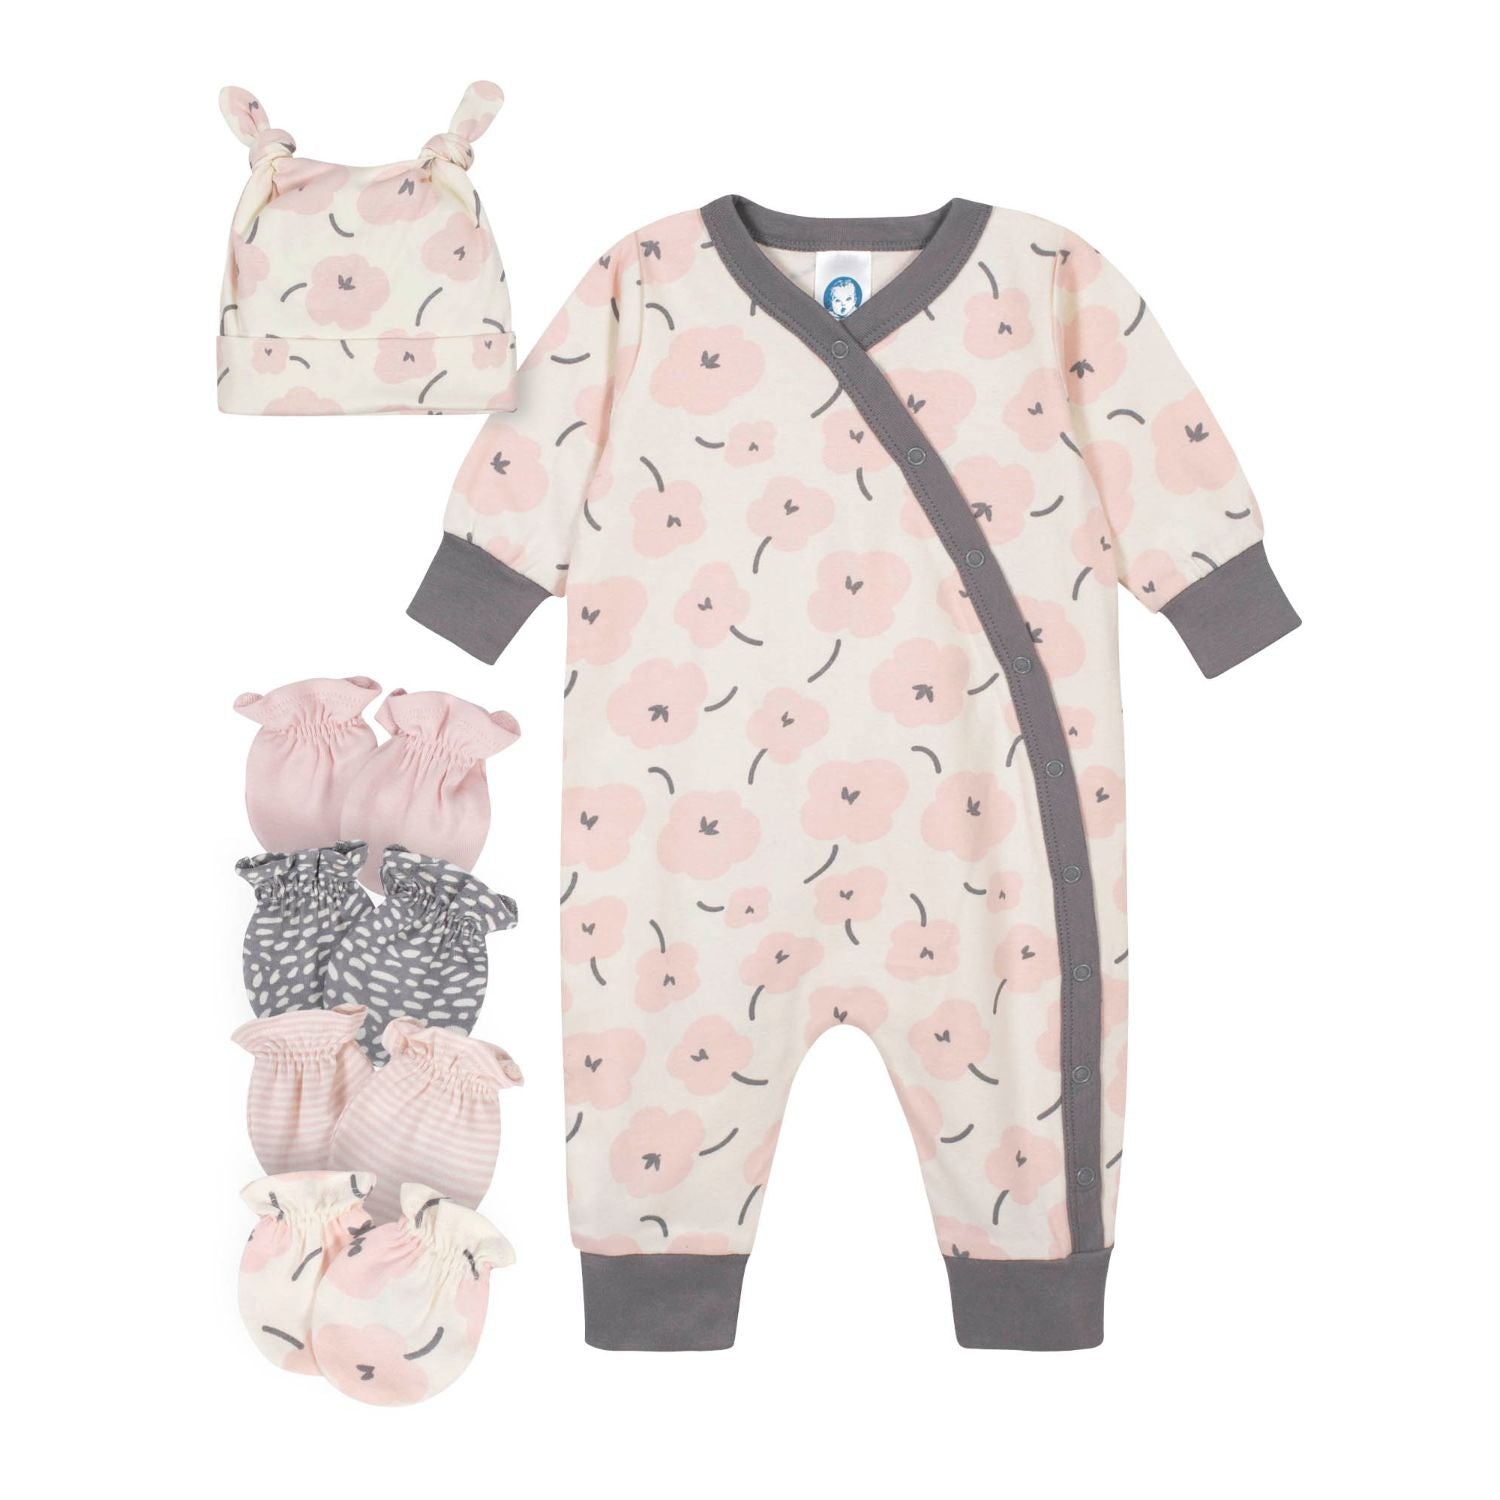 6-Piece Baby Girls Bunny Coveralls and Mittens Gift Set-Gerber Childrenswear Wholesale